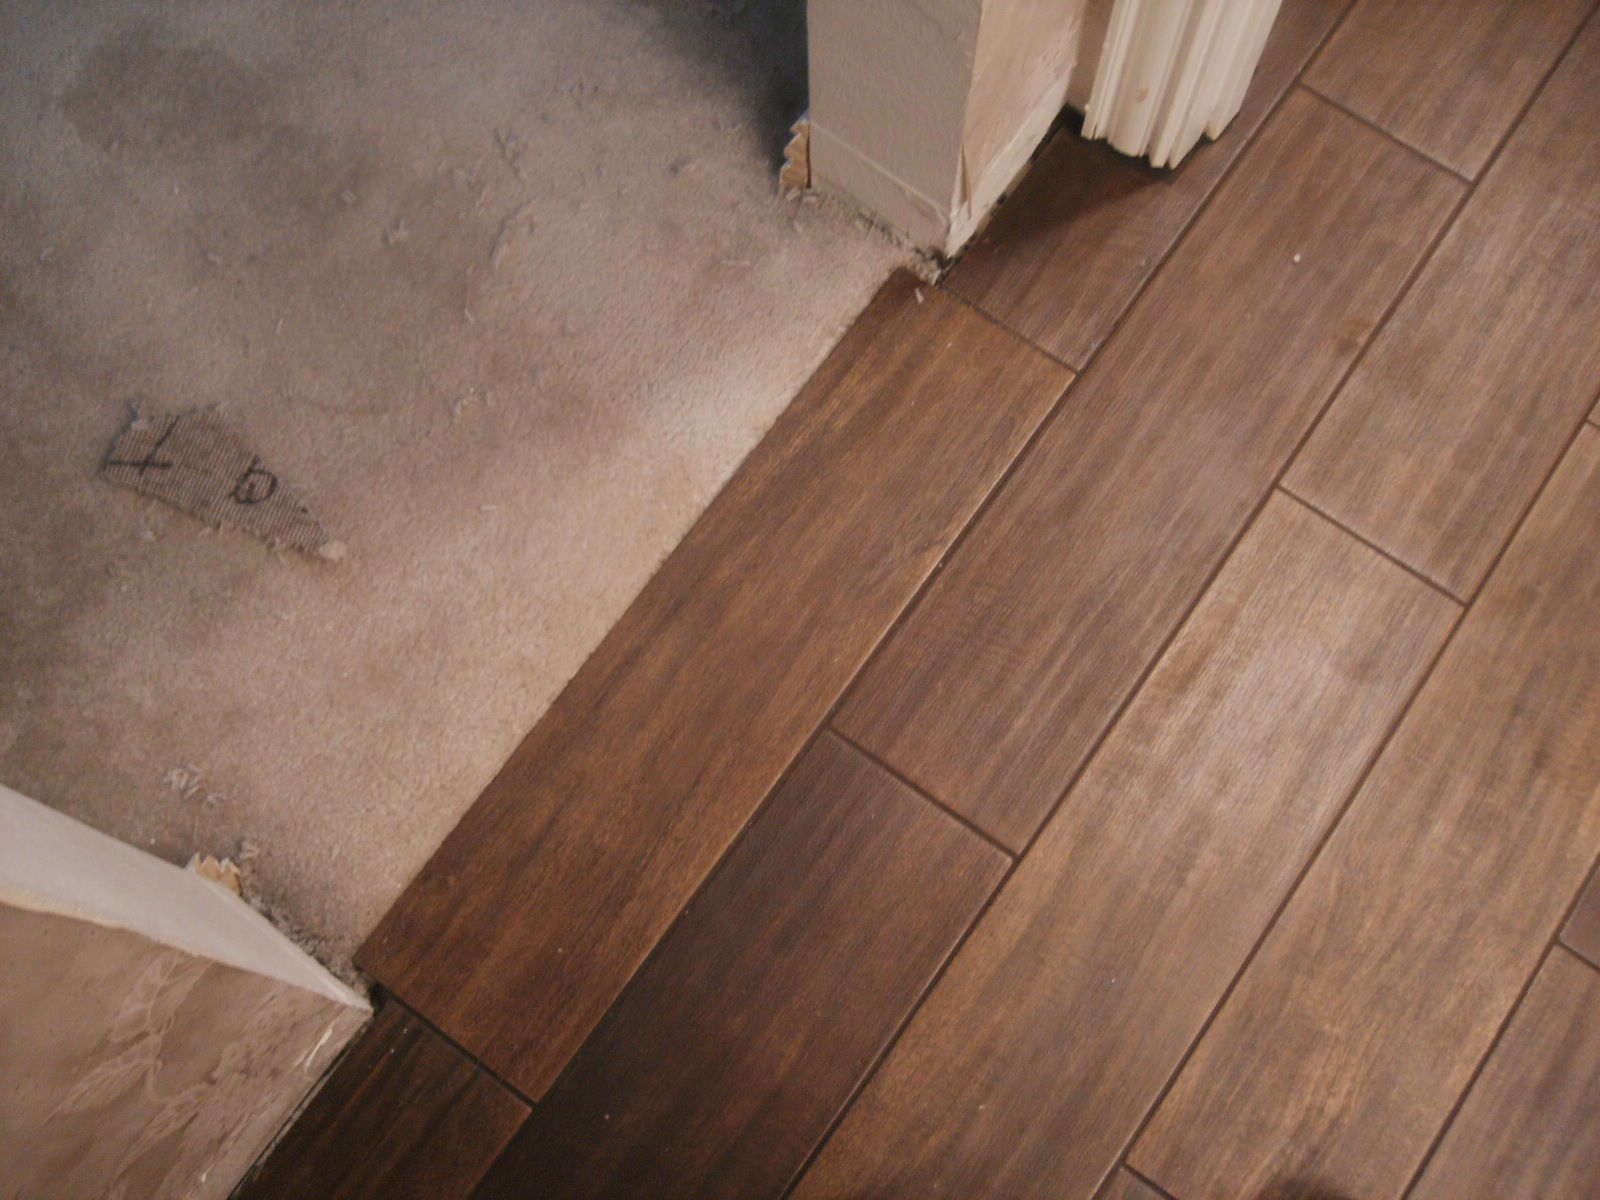 Wood 15x60 Collection of porcelain tiles wood effect floor